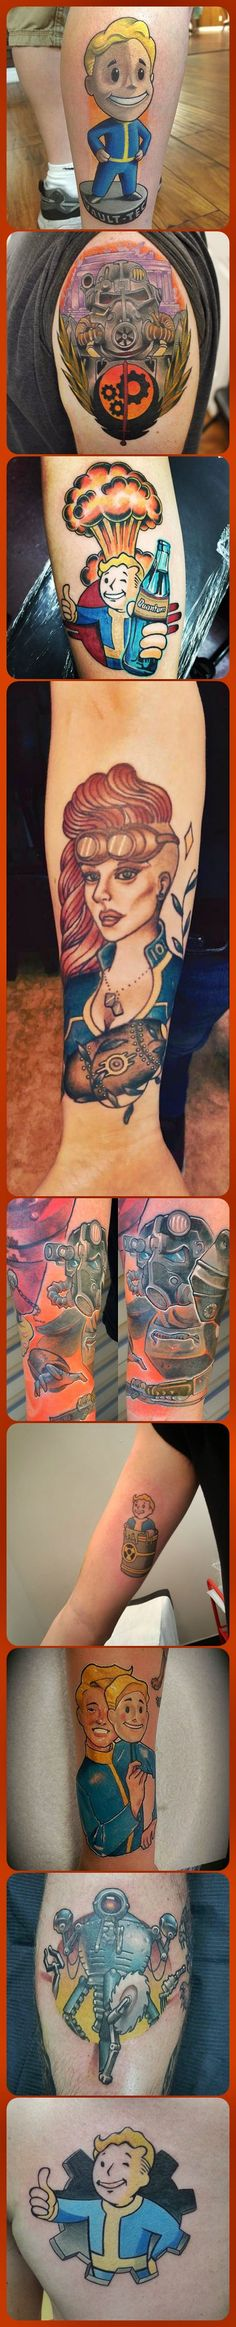 23 Best Fallout 4 Tattoo Ideas http://www.spiritustattoo.com/23-best-fallout-4-tattoo-ideas/